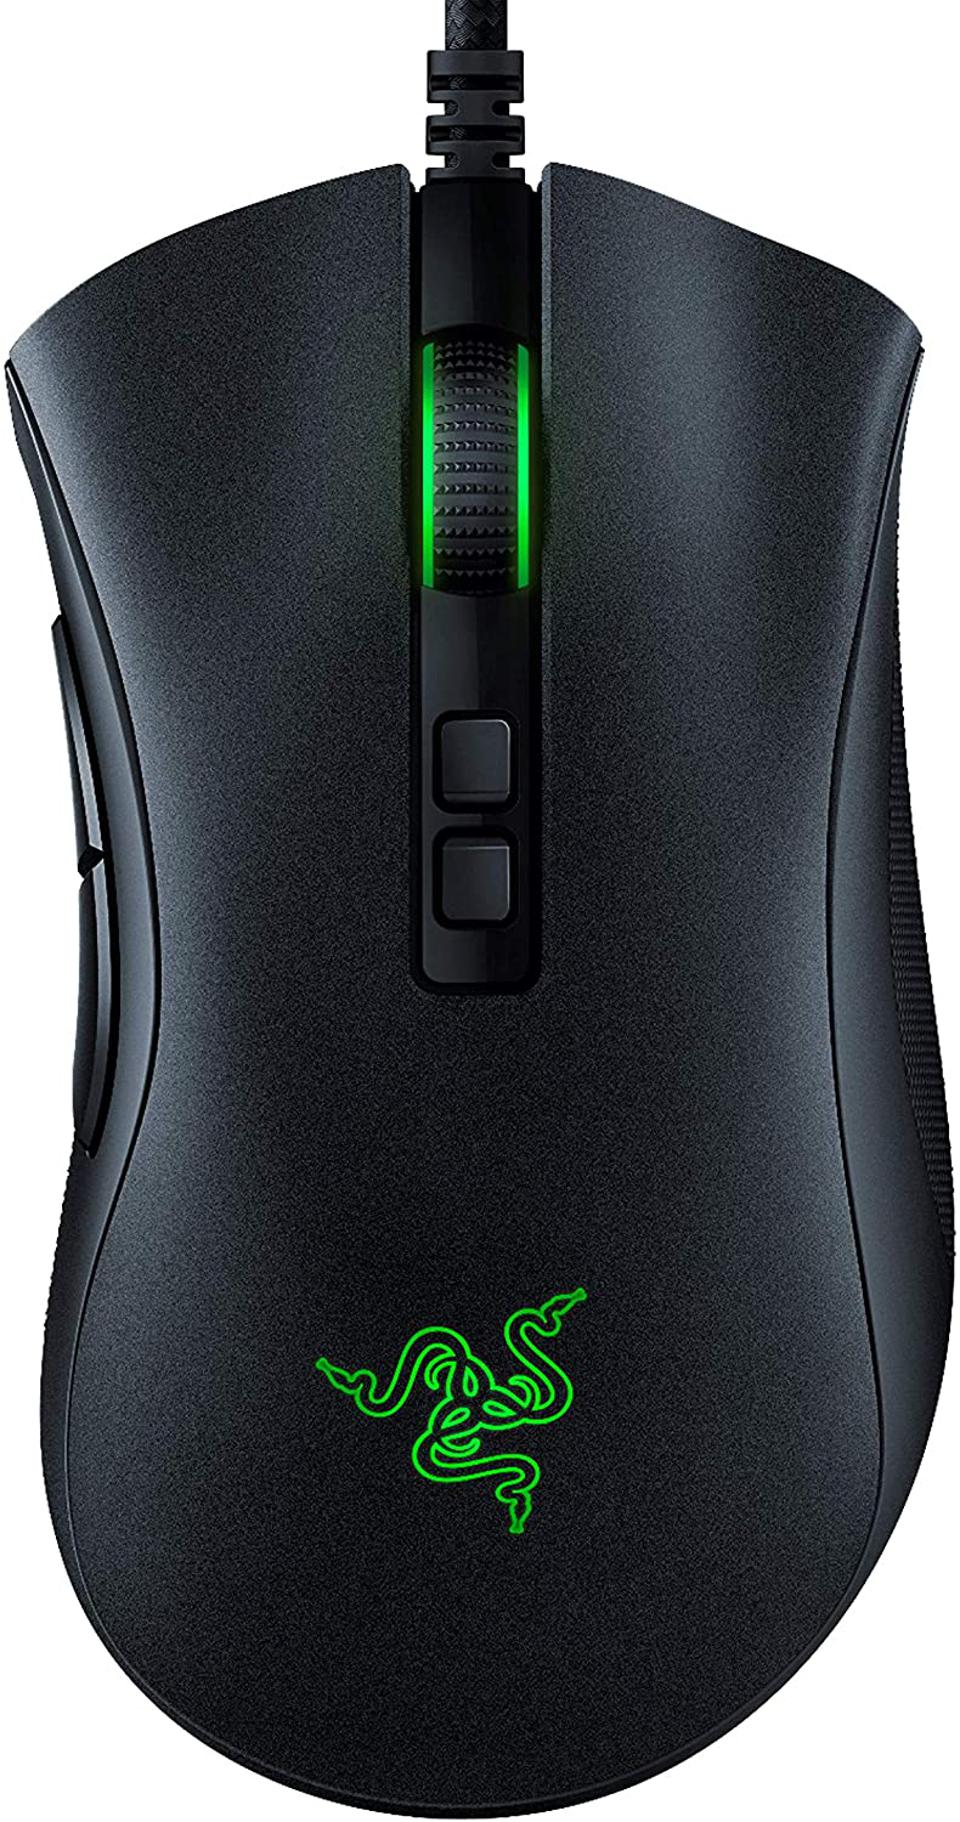 prime day gaming mouse deals Razer DeathAdder v2 Gaming Mouse: 20K DPI Optical Sensor